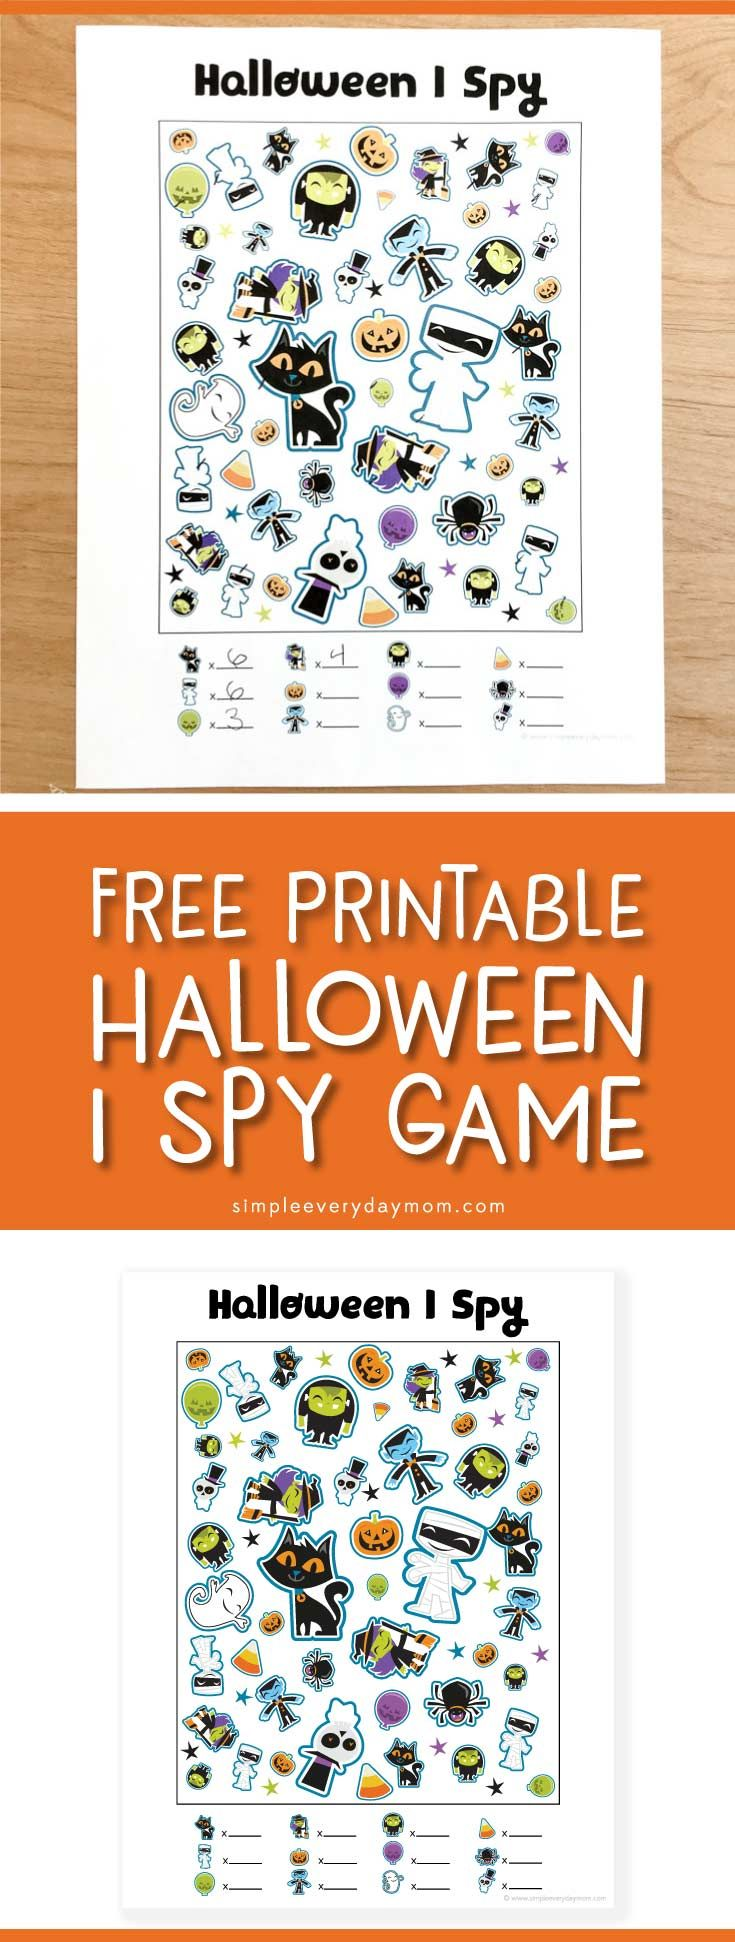 9 Simple Halloween Activities For Kids The Whole Family Will Love ...